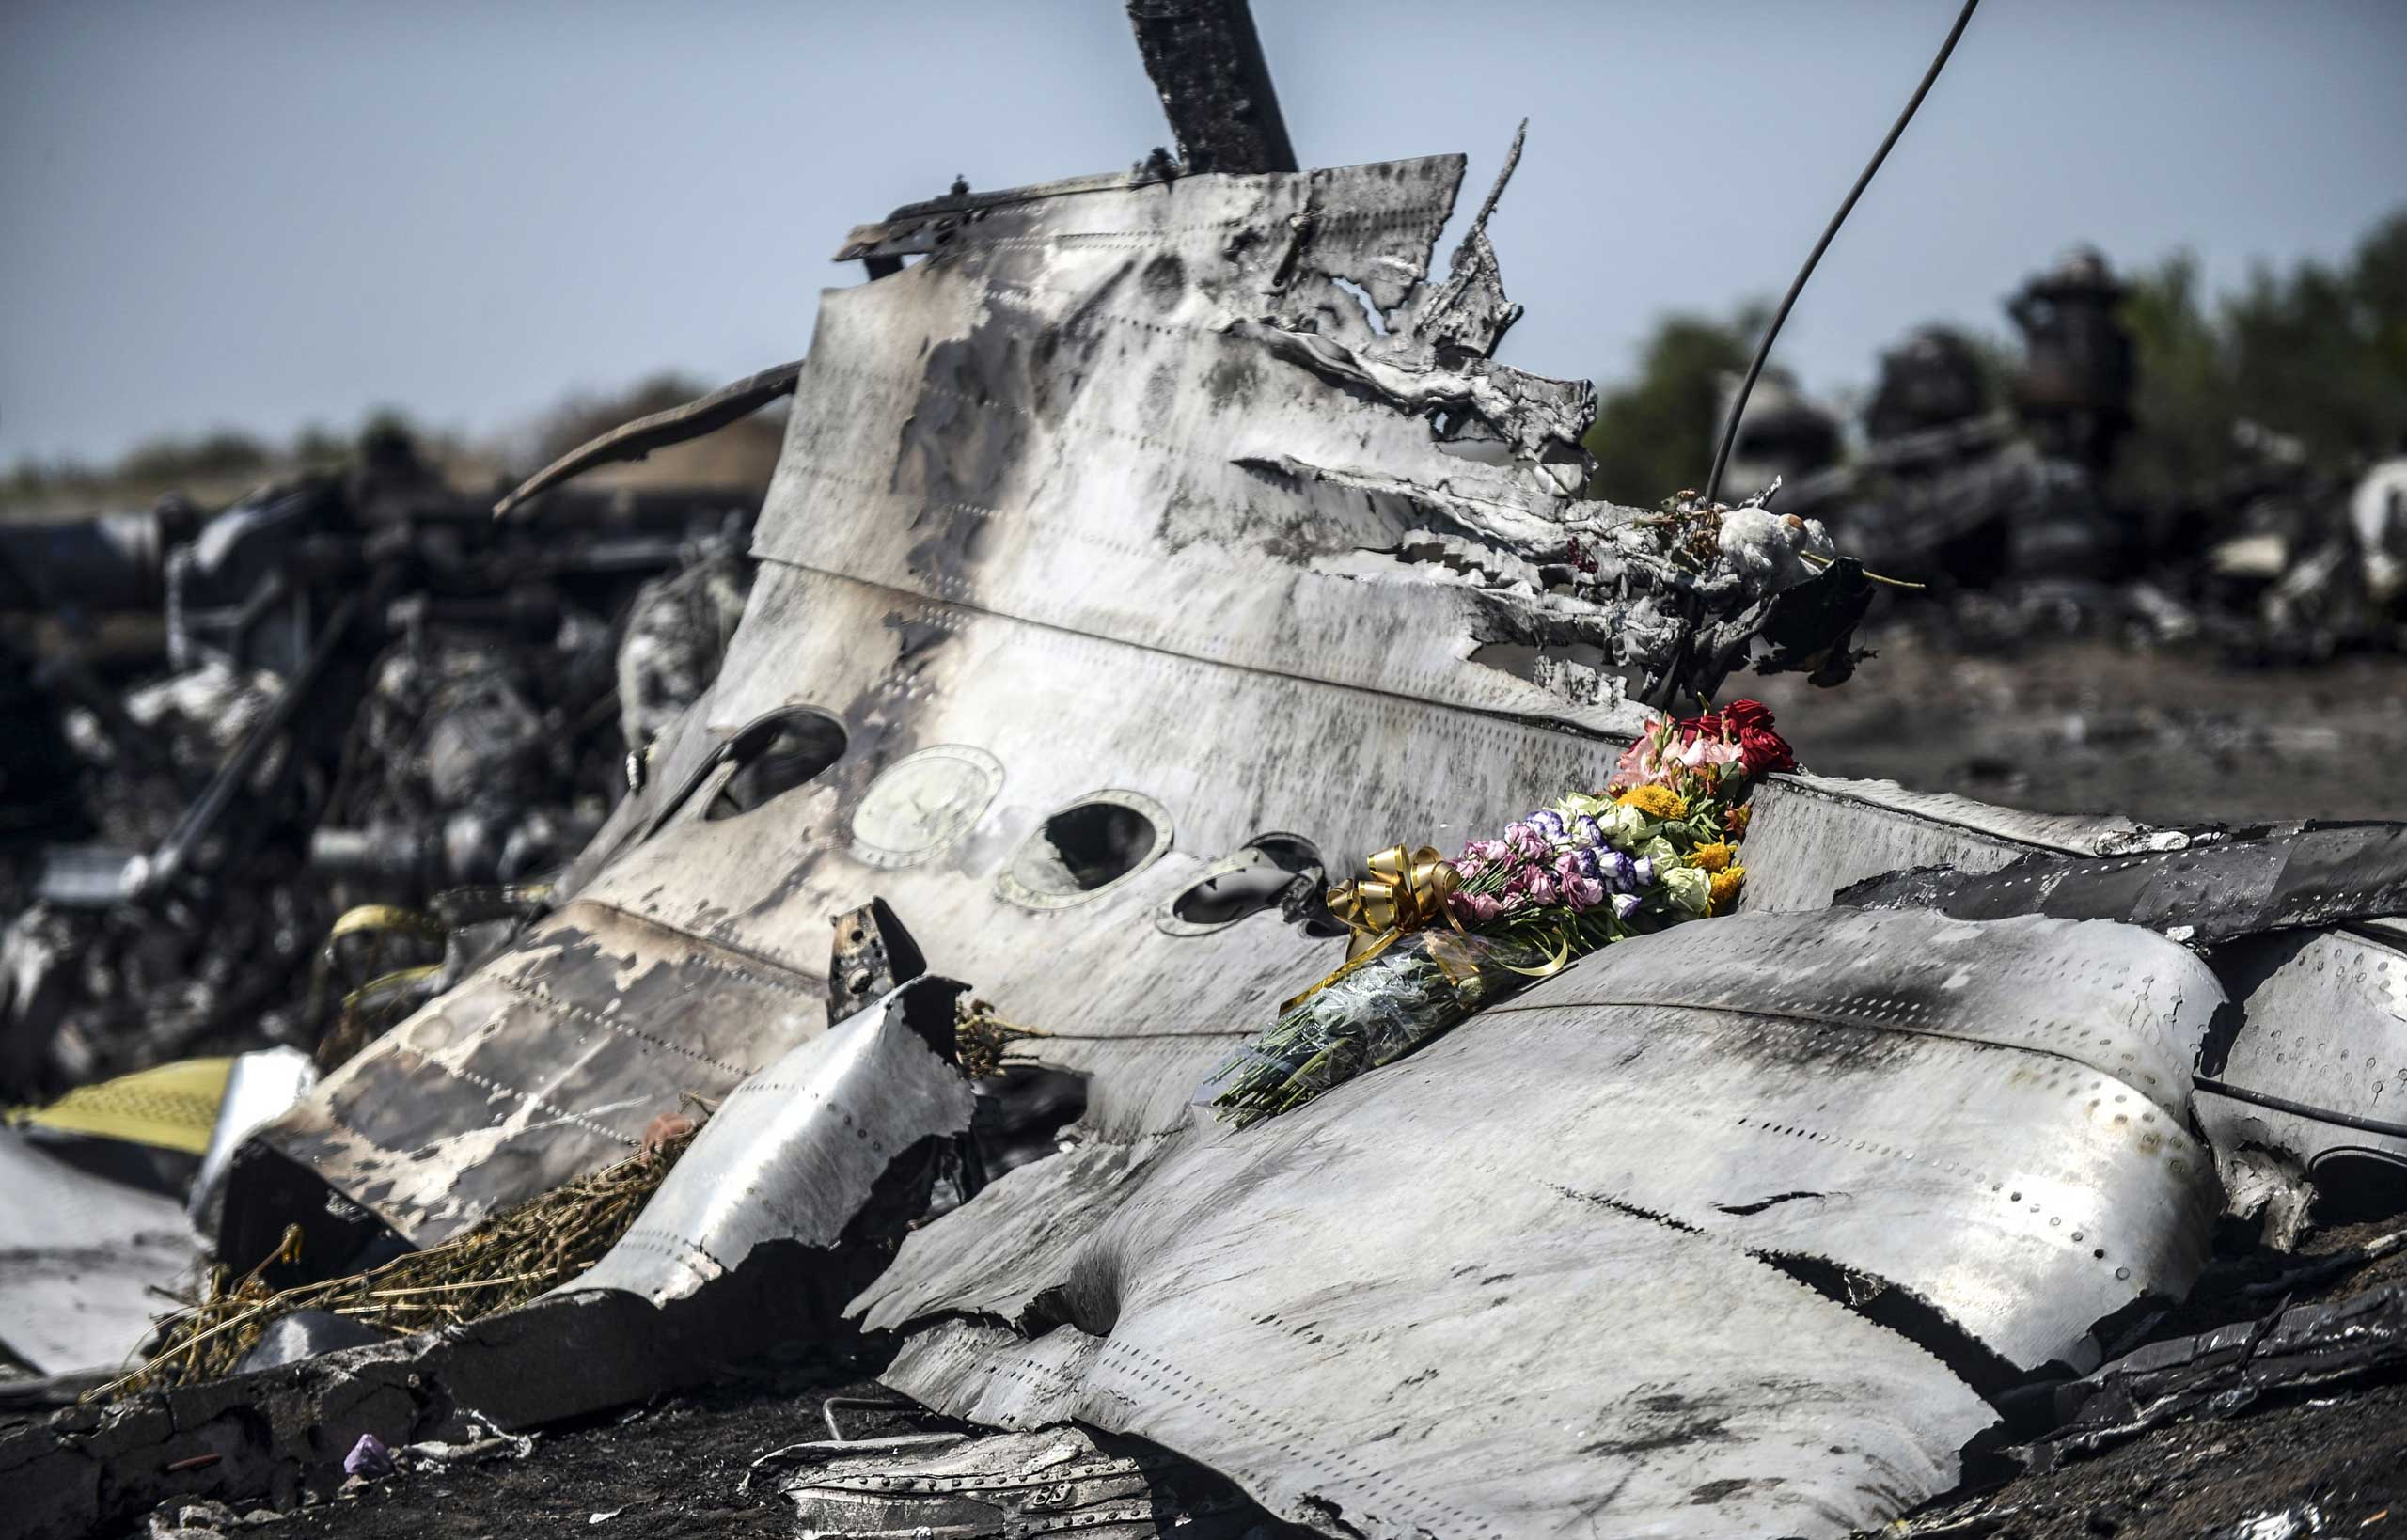 This photo taken on July 26, 2014 shows flowers left by parents of an Australian victim of the Malaysia Airlines Flight 17 crash, laid on a piece of the plane, near the village of Hrabove (Grabovo), in the Donetsk region of Ukraine.